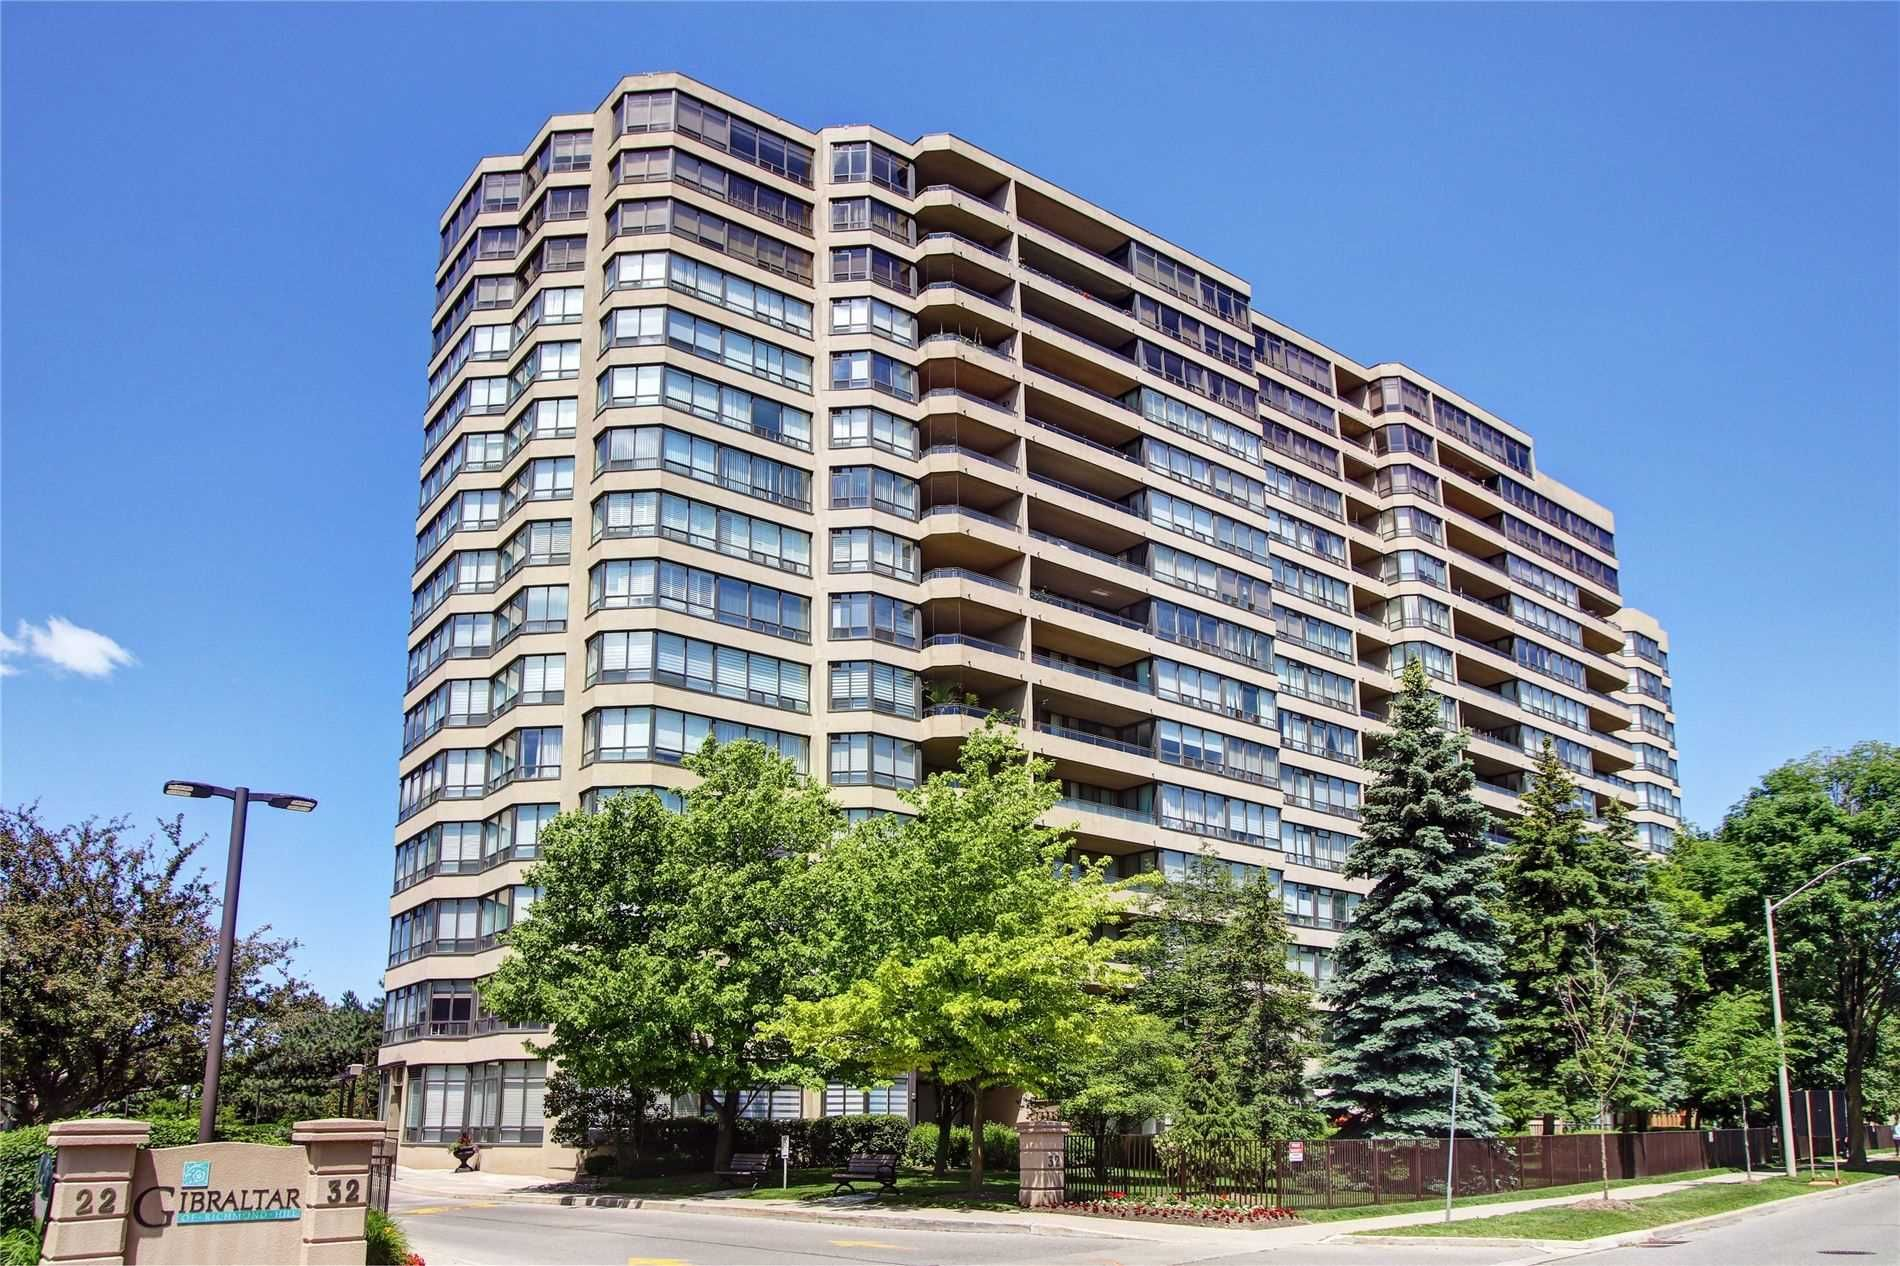 Main Photo: 420 32 Clarissa Drive in Richmond Hill: Harding Condo for sale : MLS®# N4690720